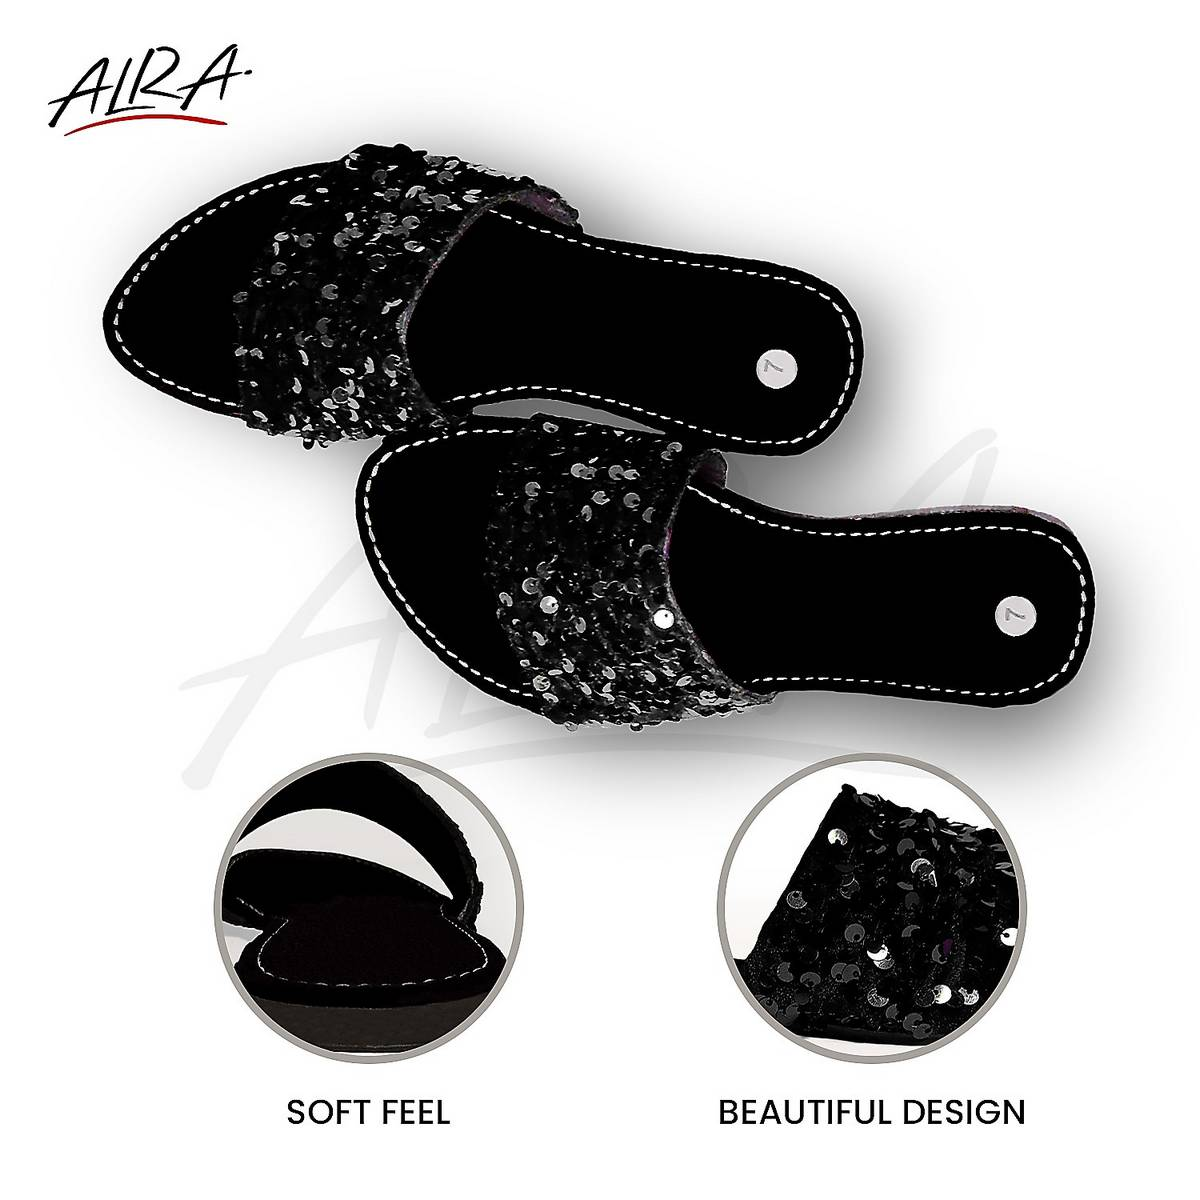 Alra Variety Store - Stylish Sandals For Women